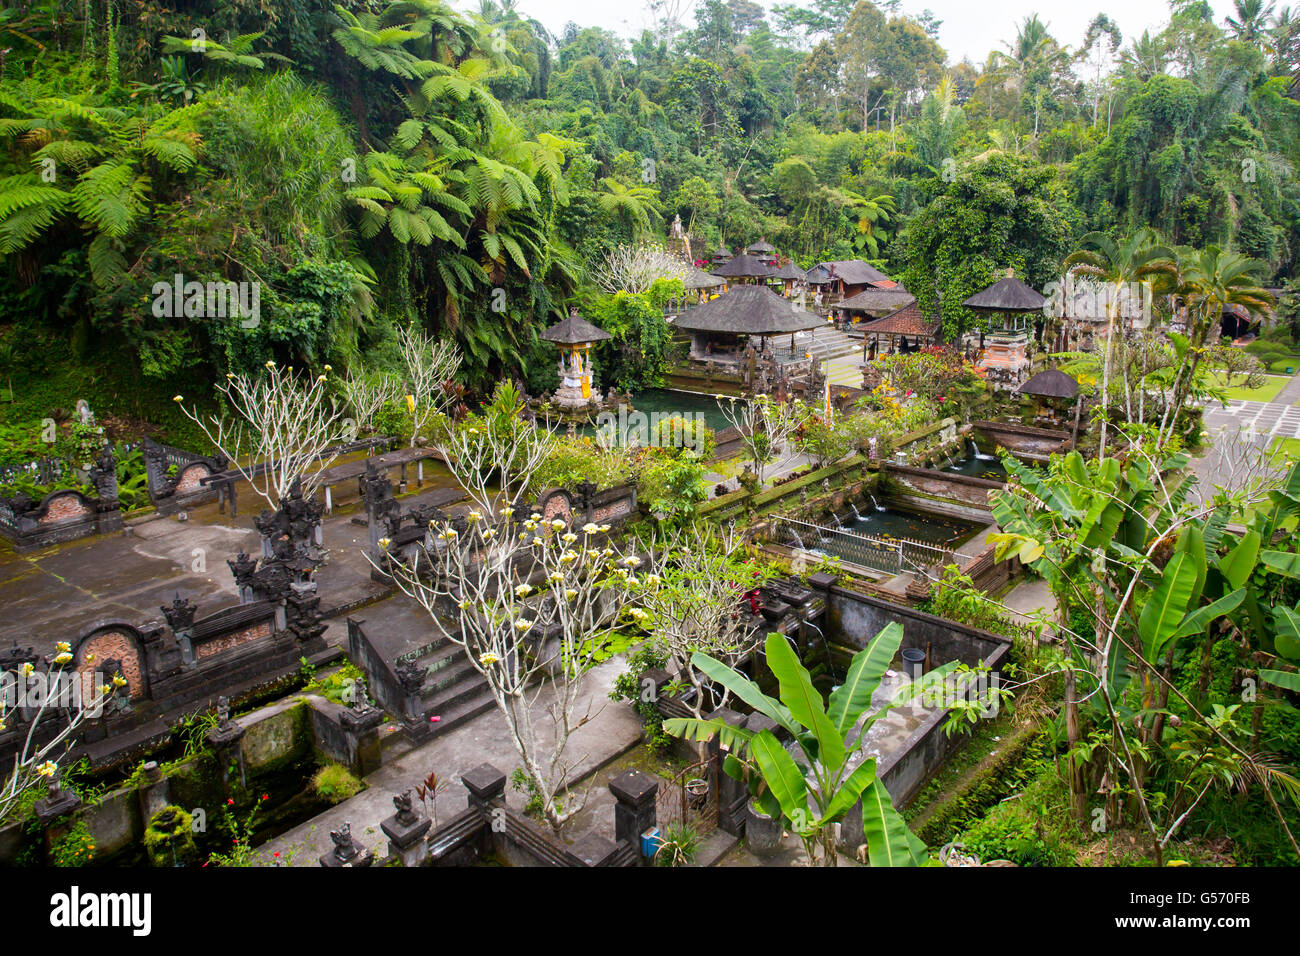 The famous Gunung Kawi Temple in Sebatu, Tegallalang, Bali, Indonesia - Stock Image